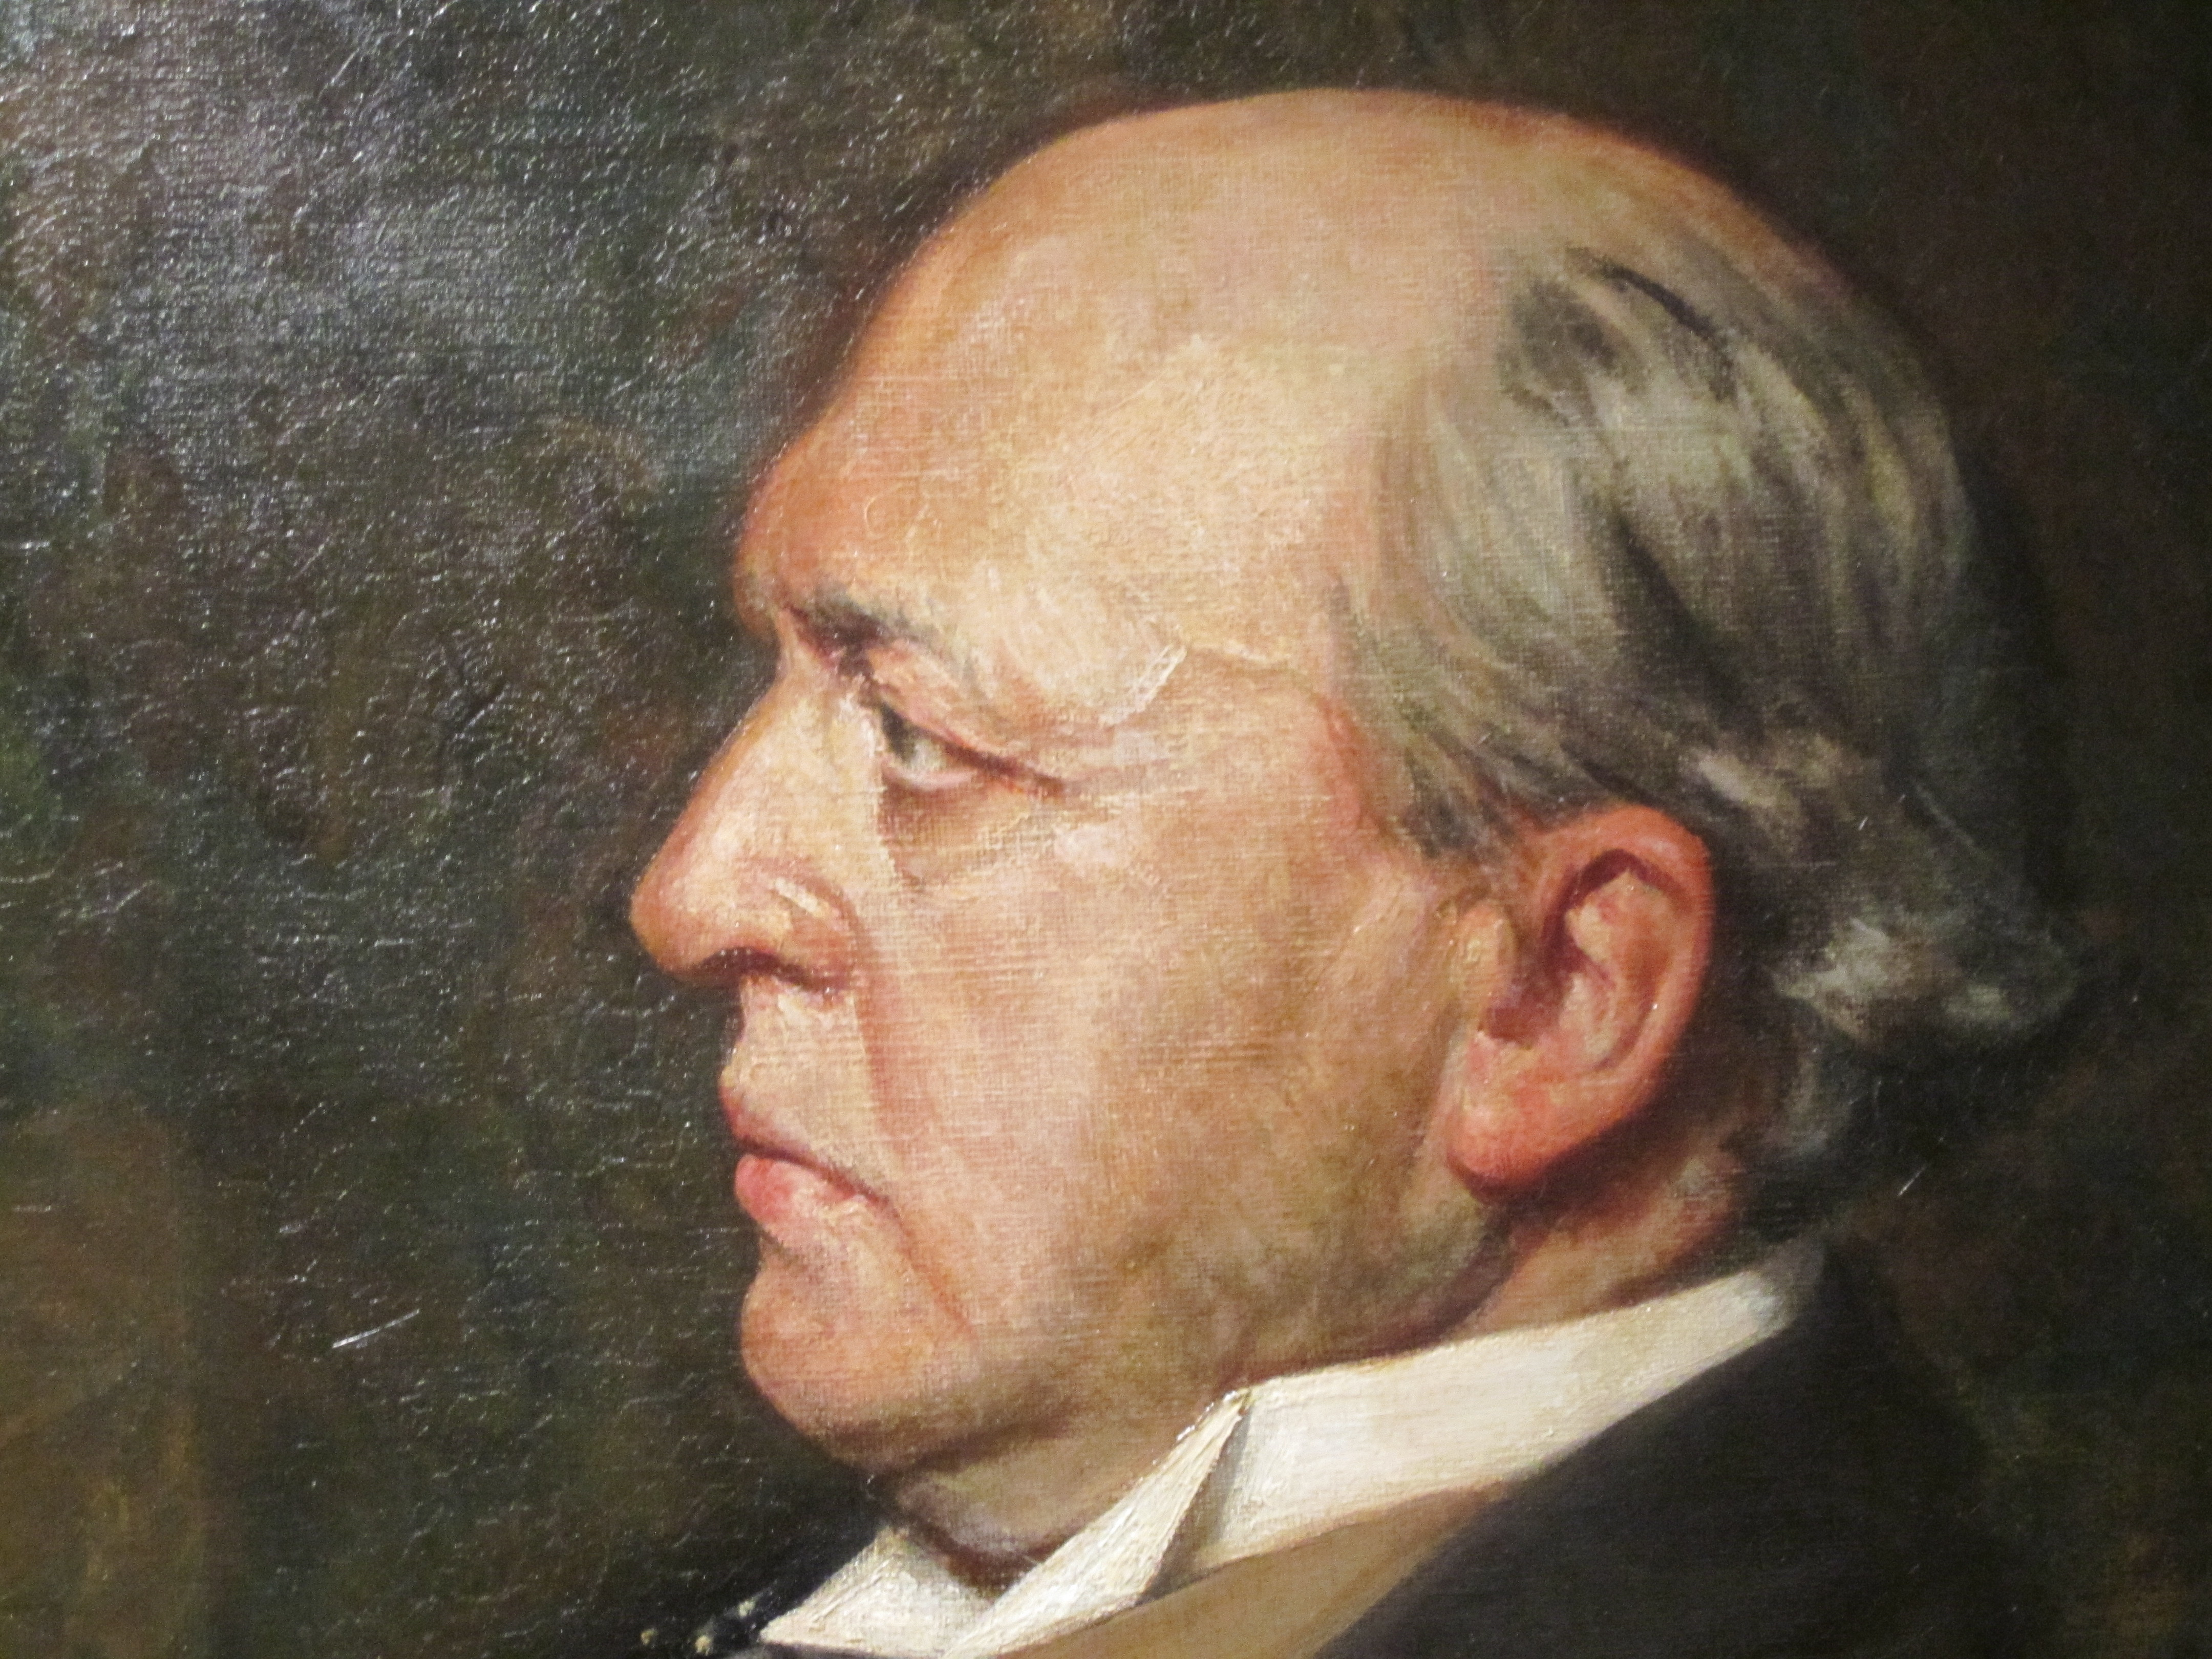 biography of henry james as one of the key figures of 19th century literary realism